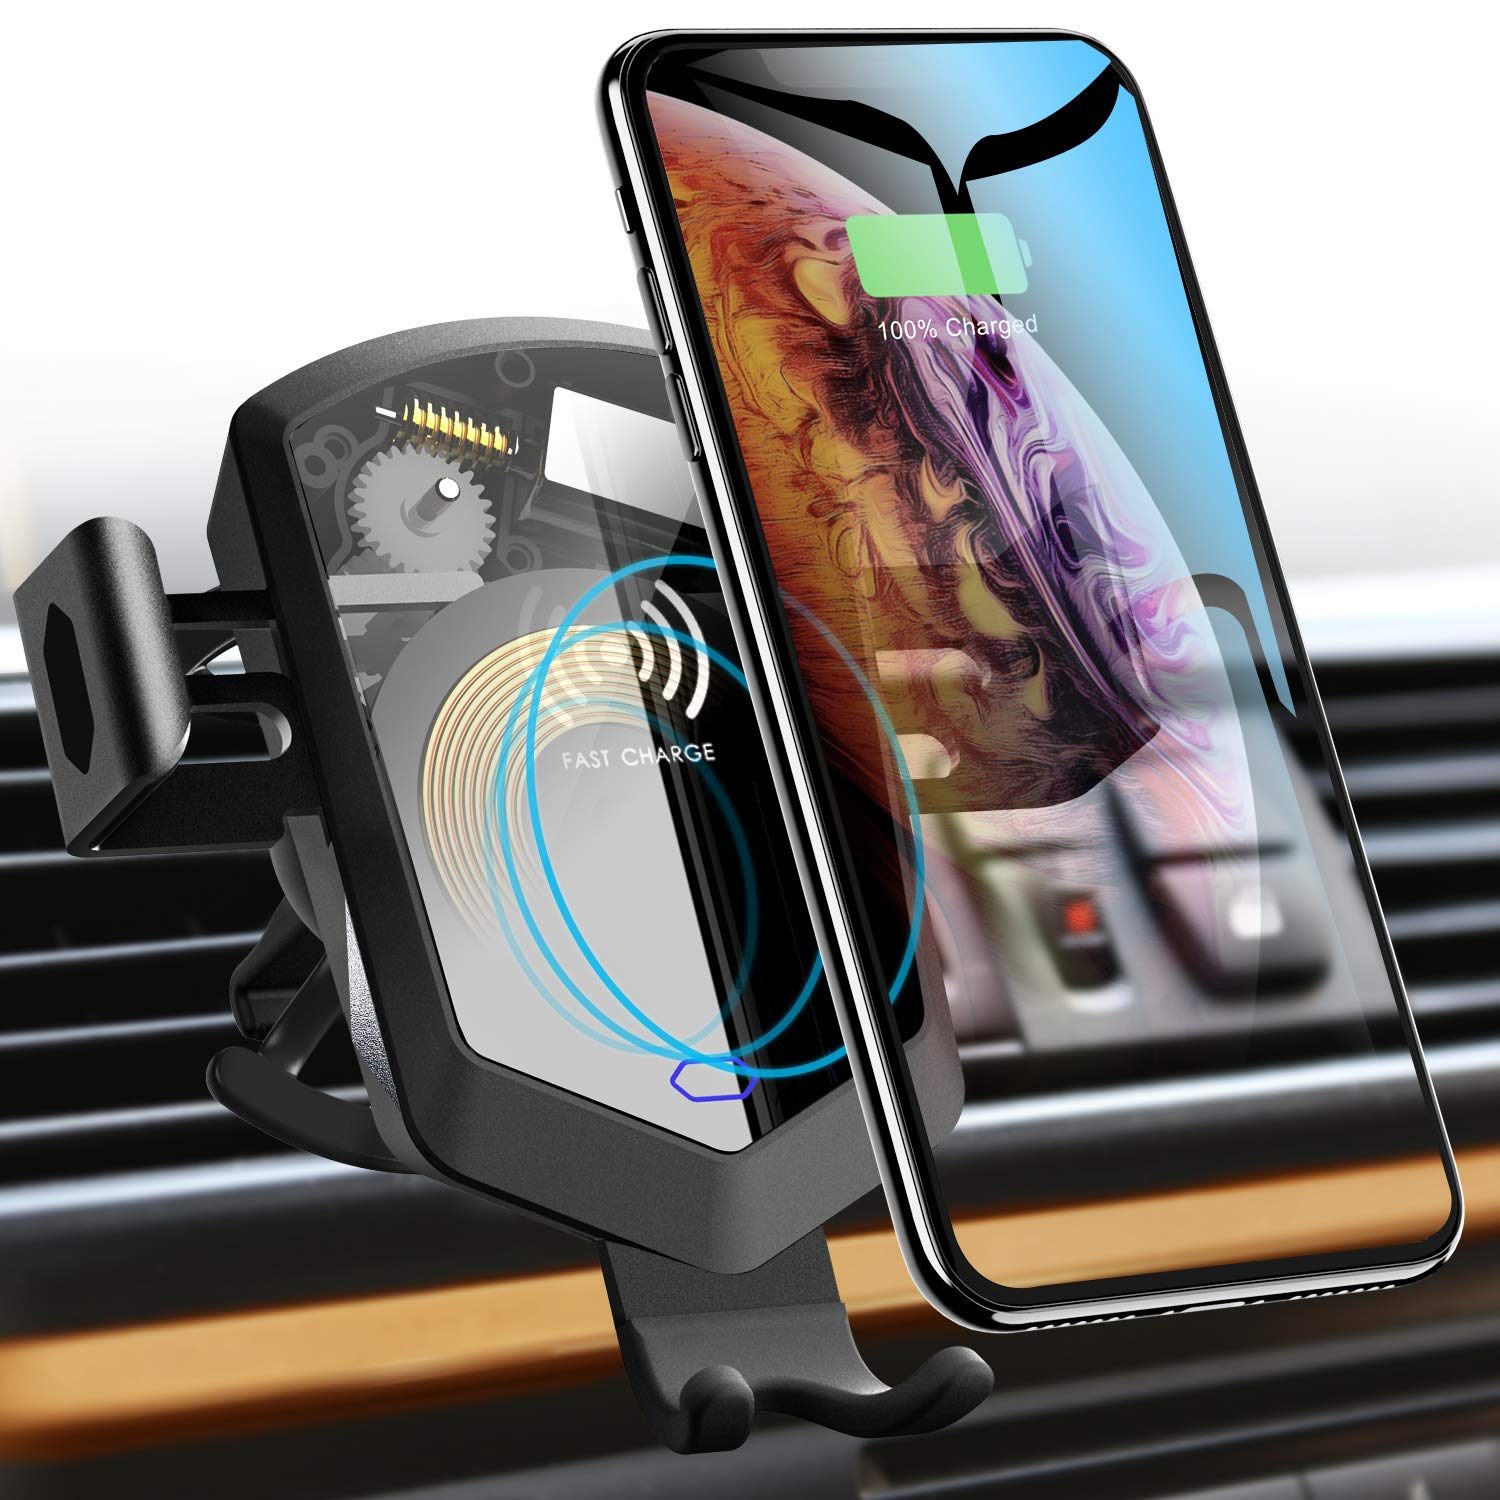 TOZO Wireless Car Charger Mount Holder Auto Sensing Silent Motor Clamping Fast Charging for iPhone Xs/XR/Xs Max/X/10/8/8 Plus, Samsung Galaxy S8 S8 S9 S9 S10 S10 Note 8, 9 [Black]